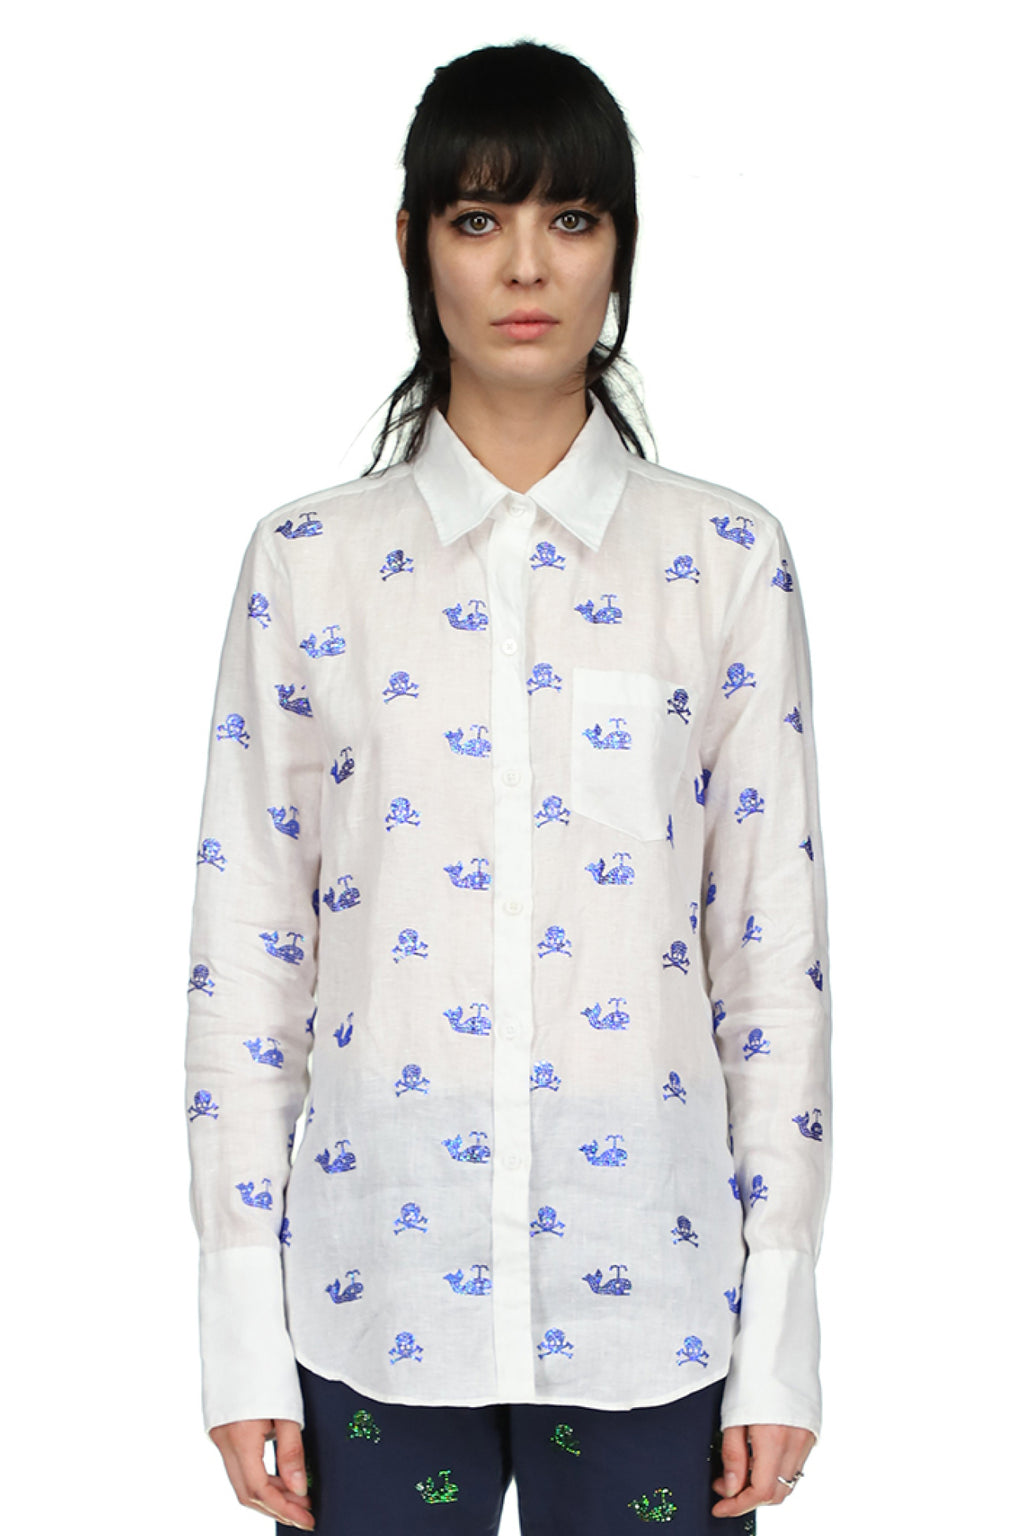 Skull Crossbones and Whales Classic Shirt in White Linen - Spring 2021 - Libertine